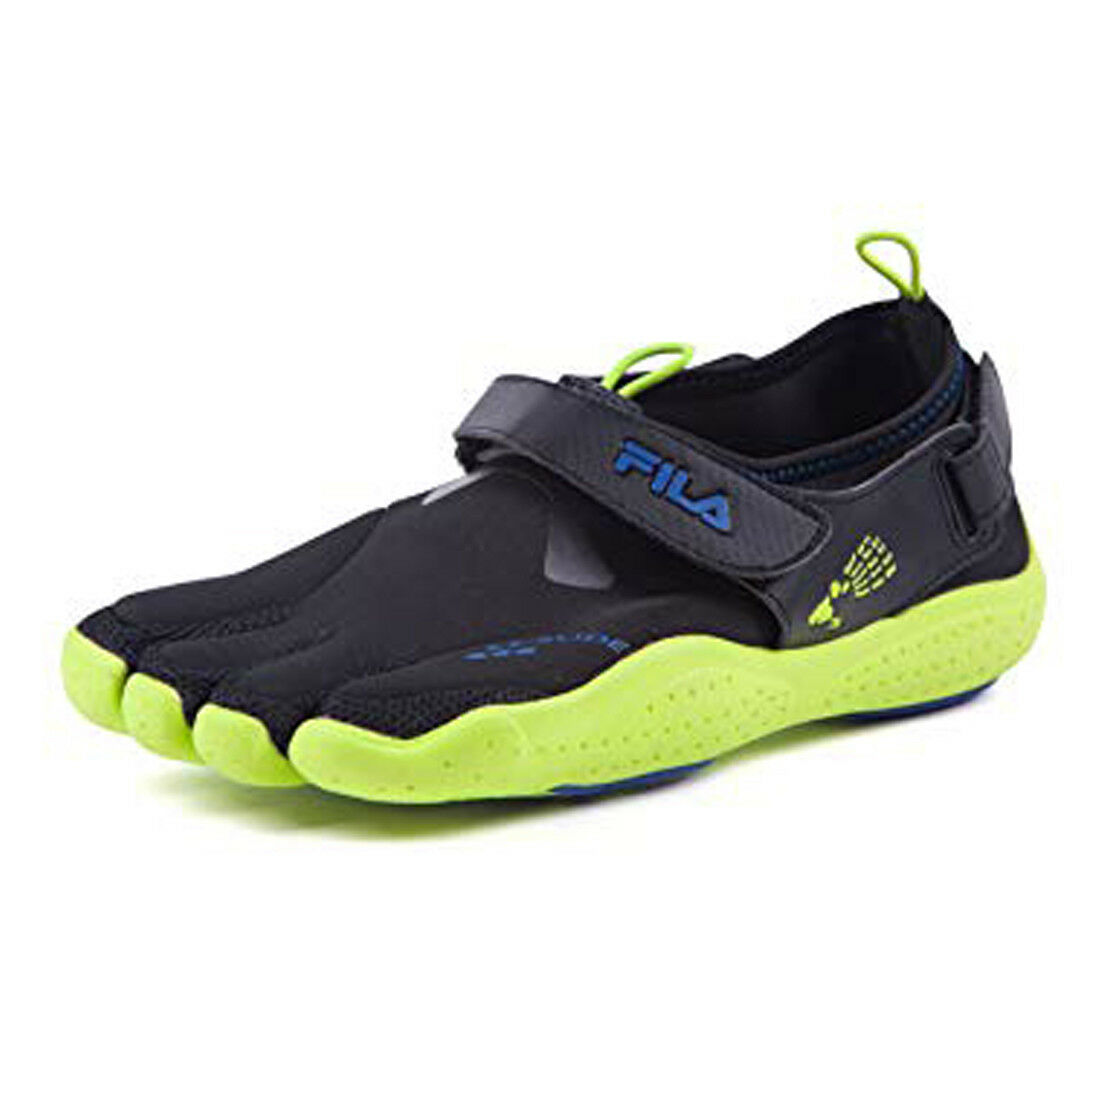 FILA SKELE-TOES EZ SLIDE Running Water Boat Beach shoes 1PK14074 green SIZE 10